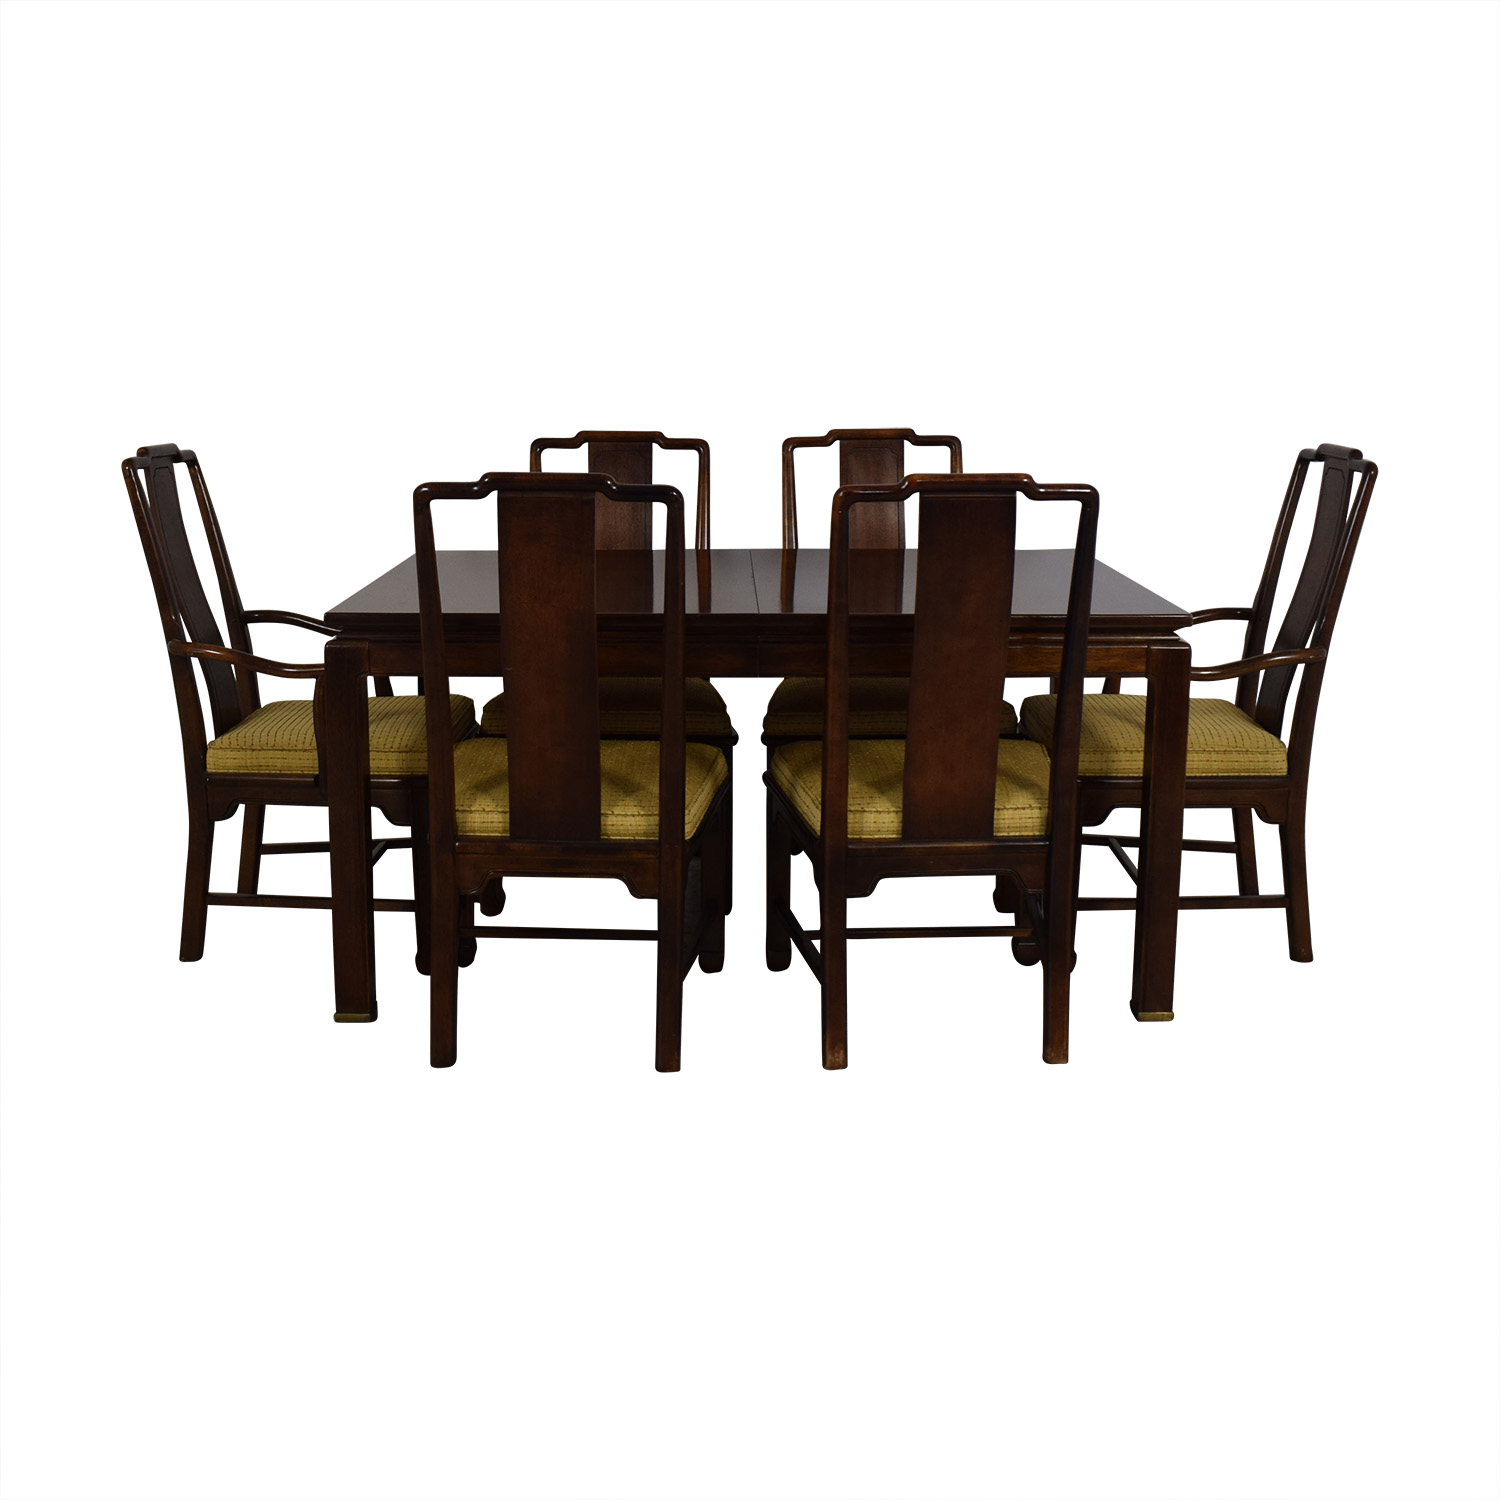 American Of Martinsville Dining Room Table And Chairs / Dining Sets